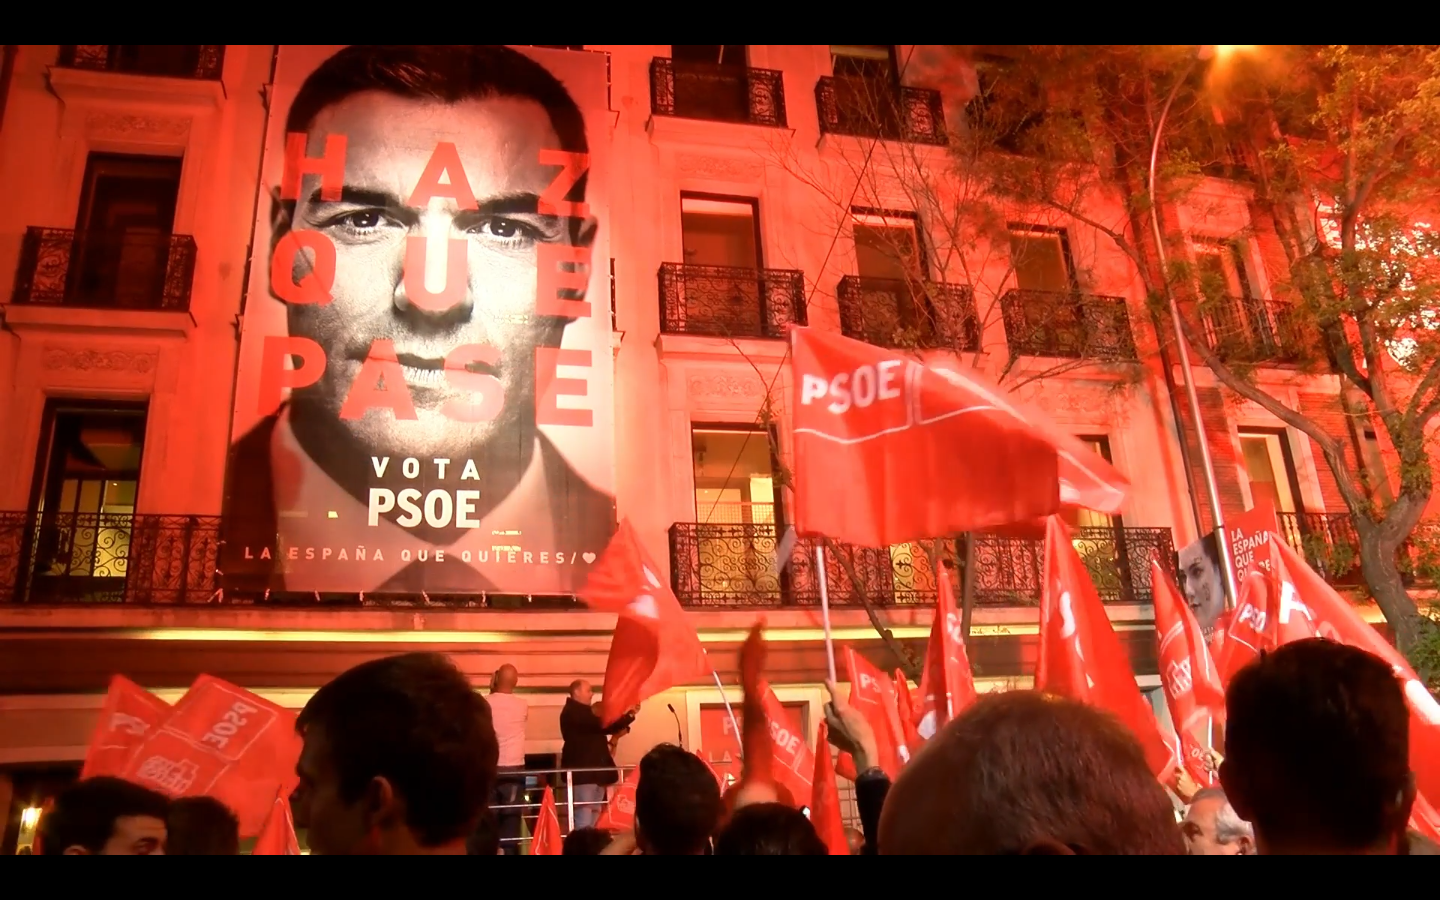 PSOE victory rally